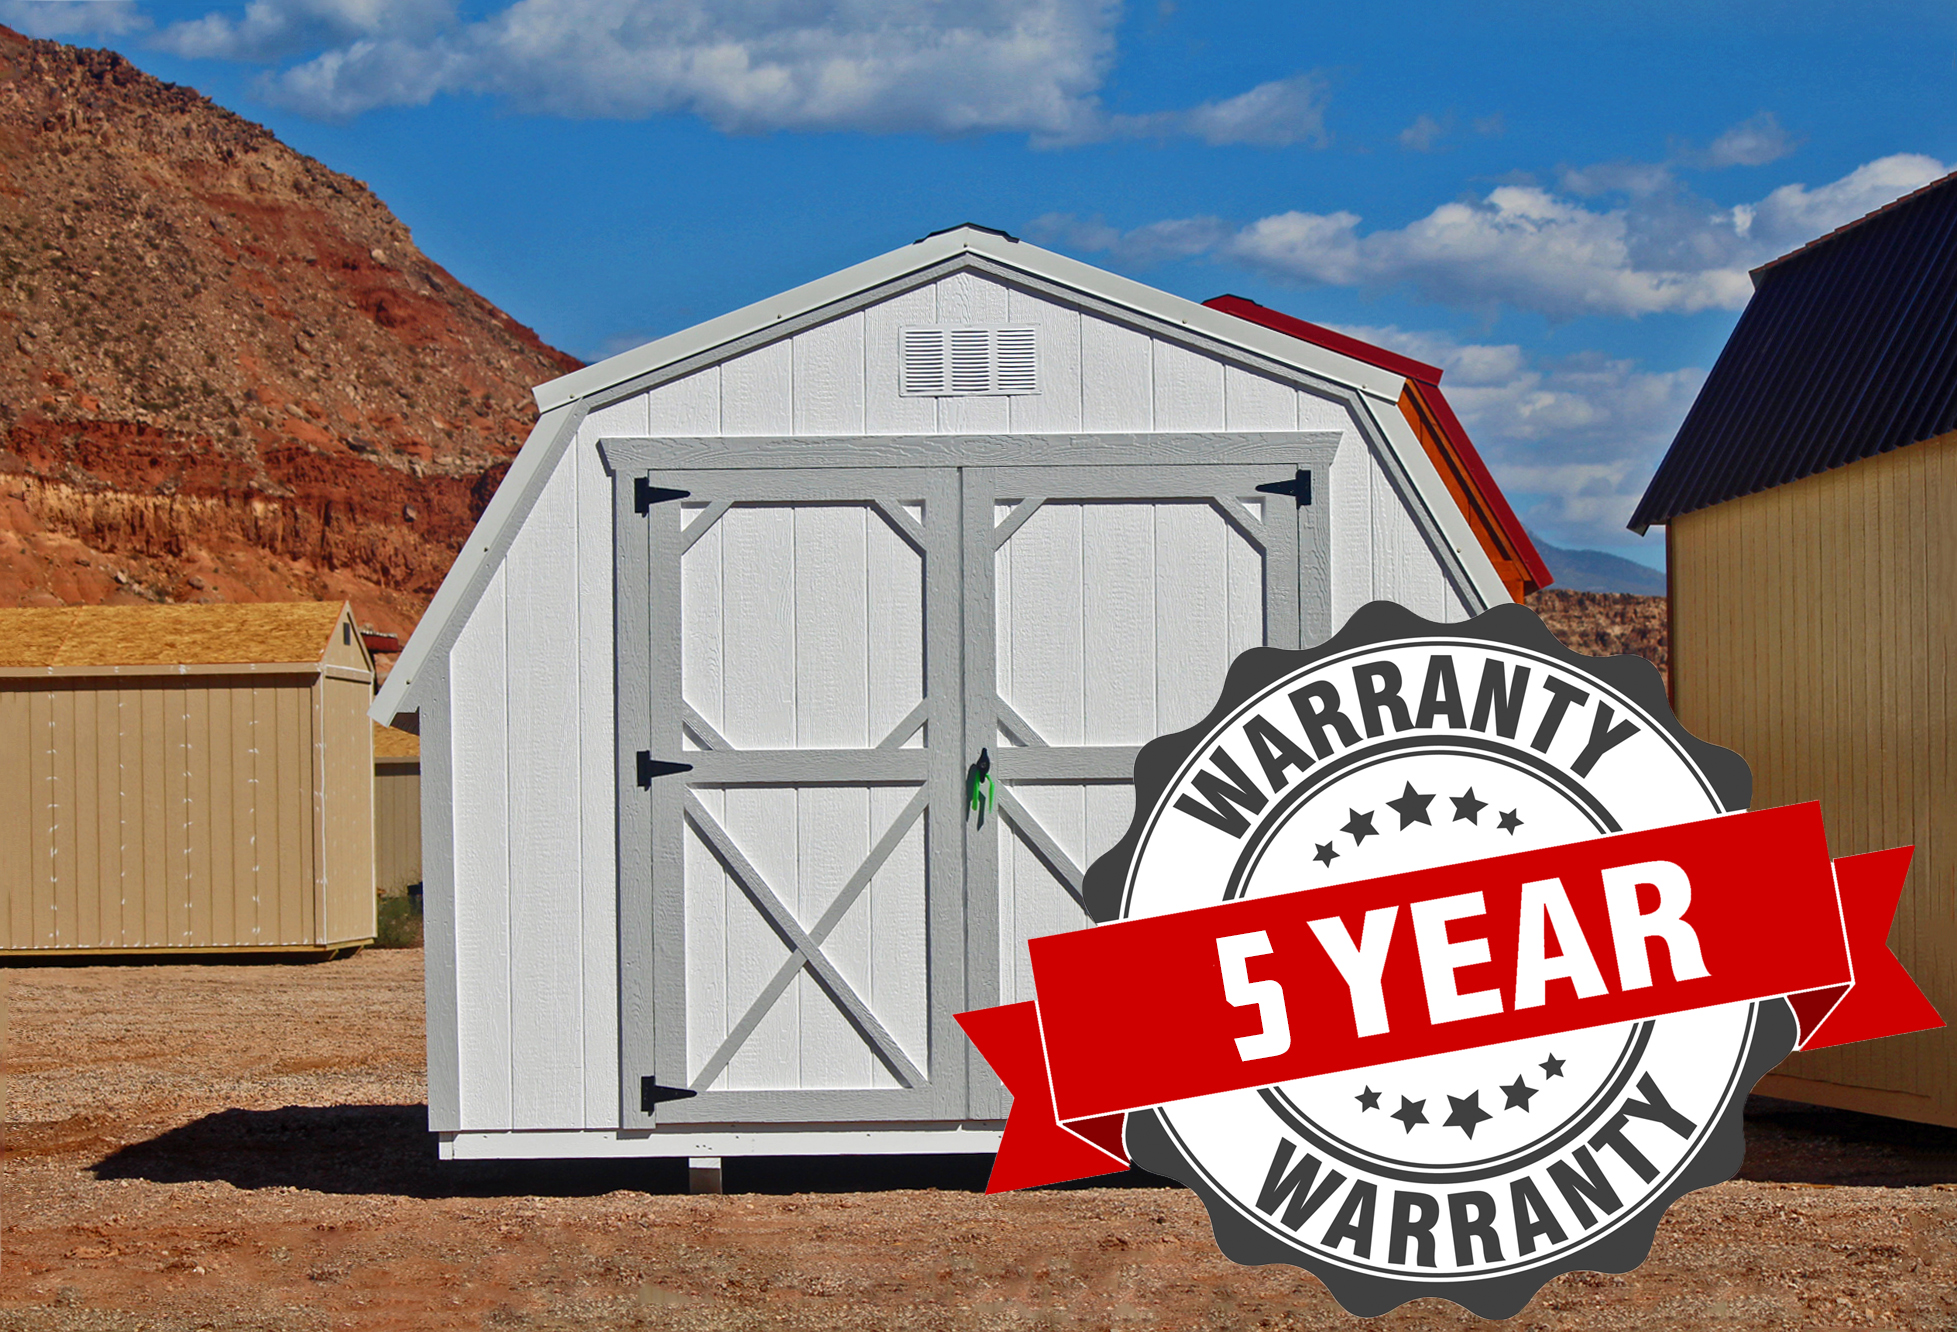 Every buildings comes with a 5 year limited warranty at Vegas Sheds in Las Vegas Nevada